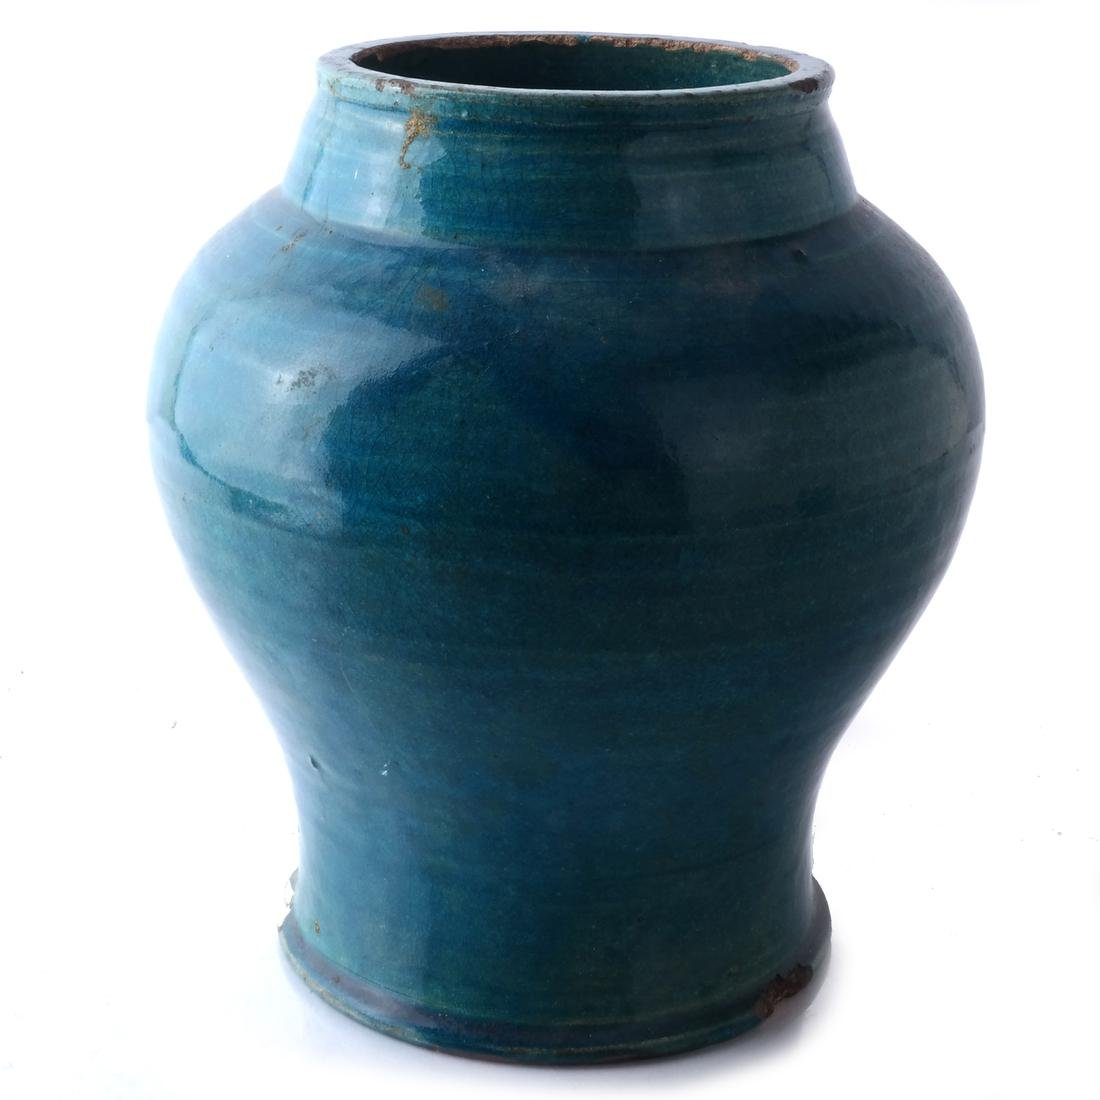 Chinese Ceramic Jar, Turquoise Colored - 4